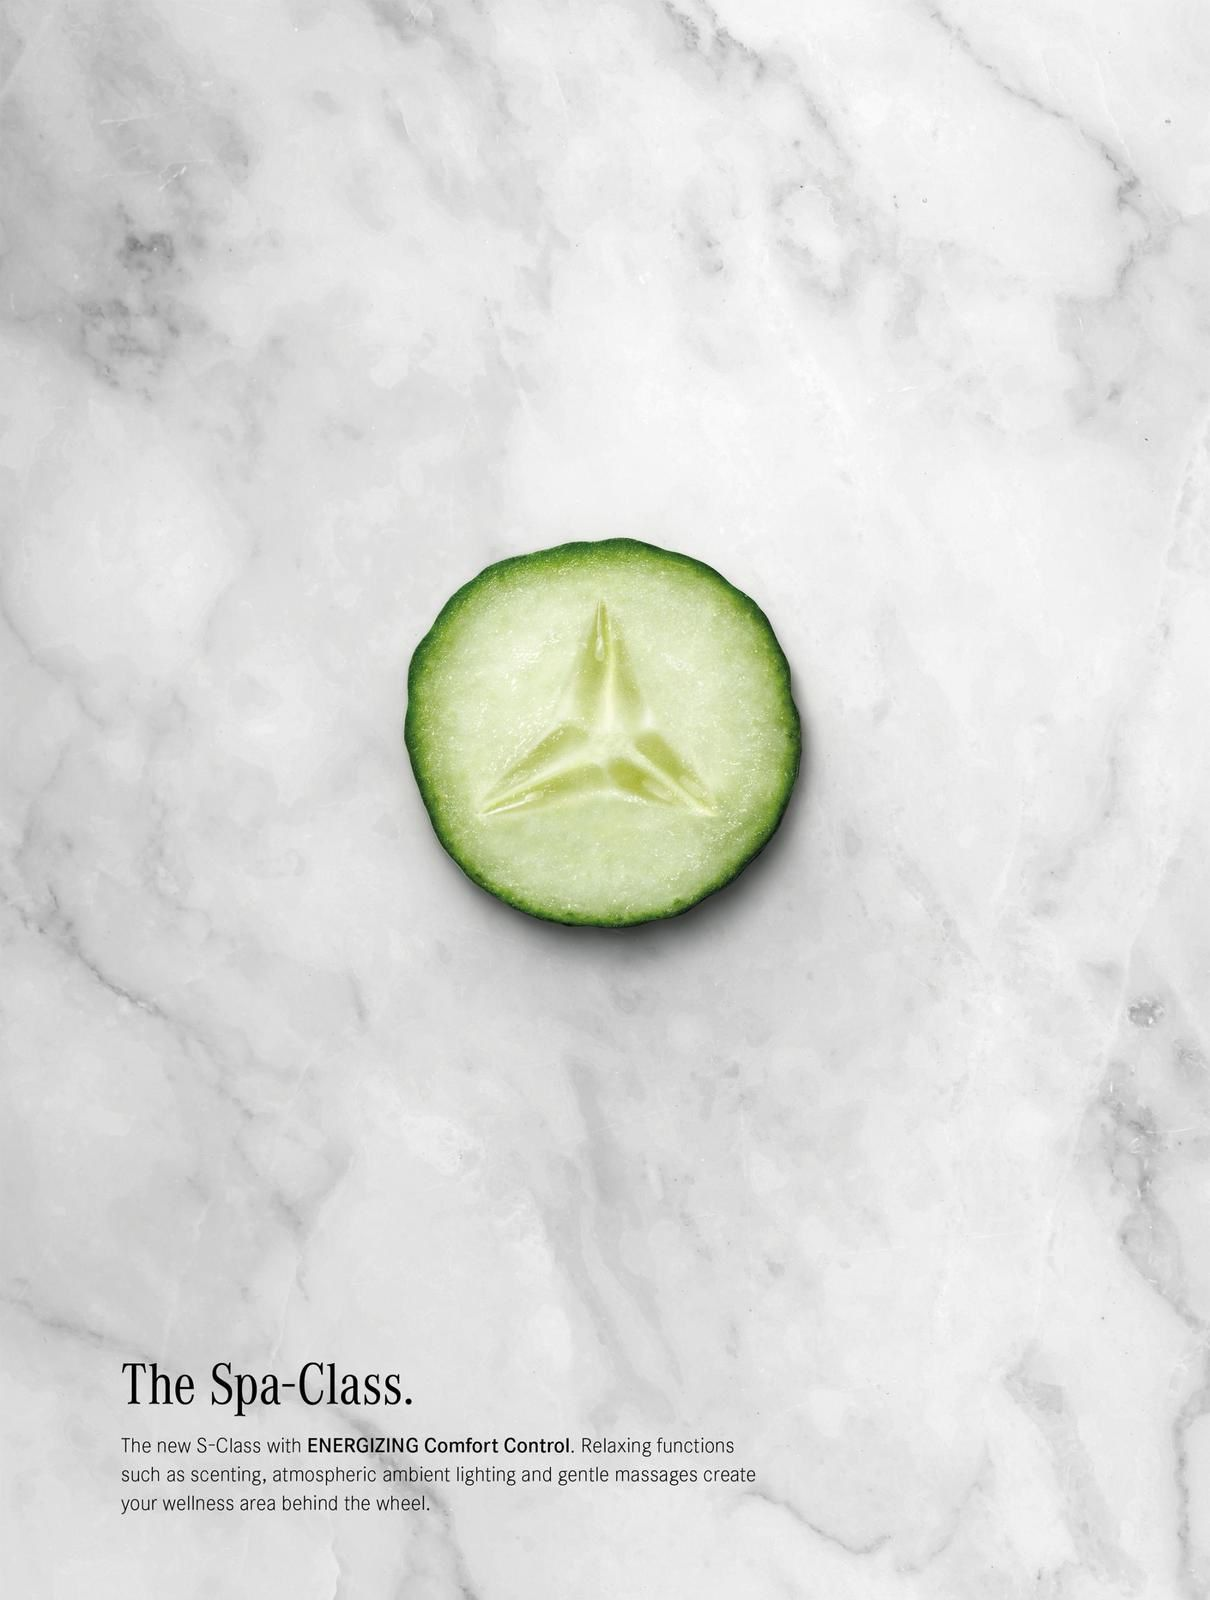 "Mercedes-Benz : ""The Spa-Class. The new S-Class with ENERGIZING Comfort Control. Relaxing functions such as scenting, atmospheric ambient lighting and gentle massages create your wellness area behind the wheel"" I Agence : PKP BBDO, Vienne, Austriche (août 2018)"